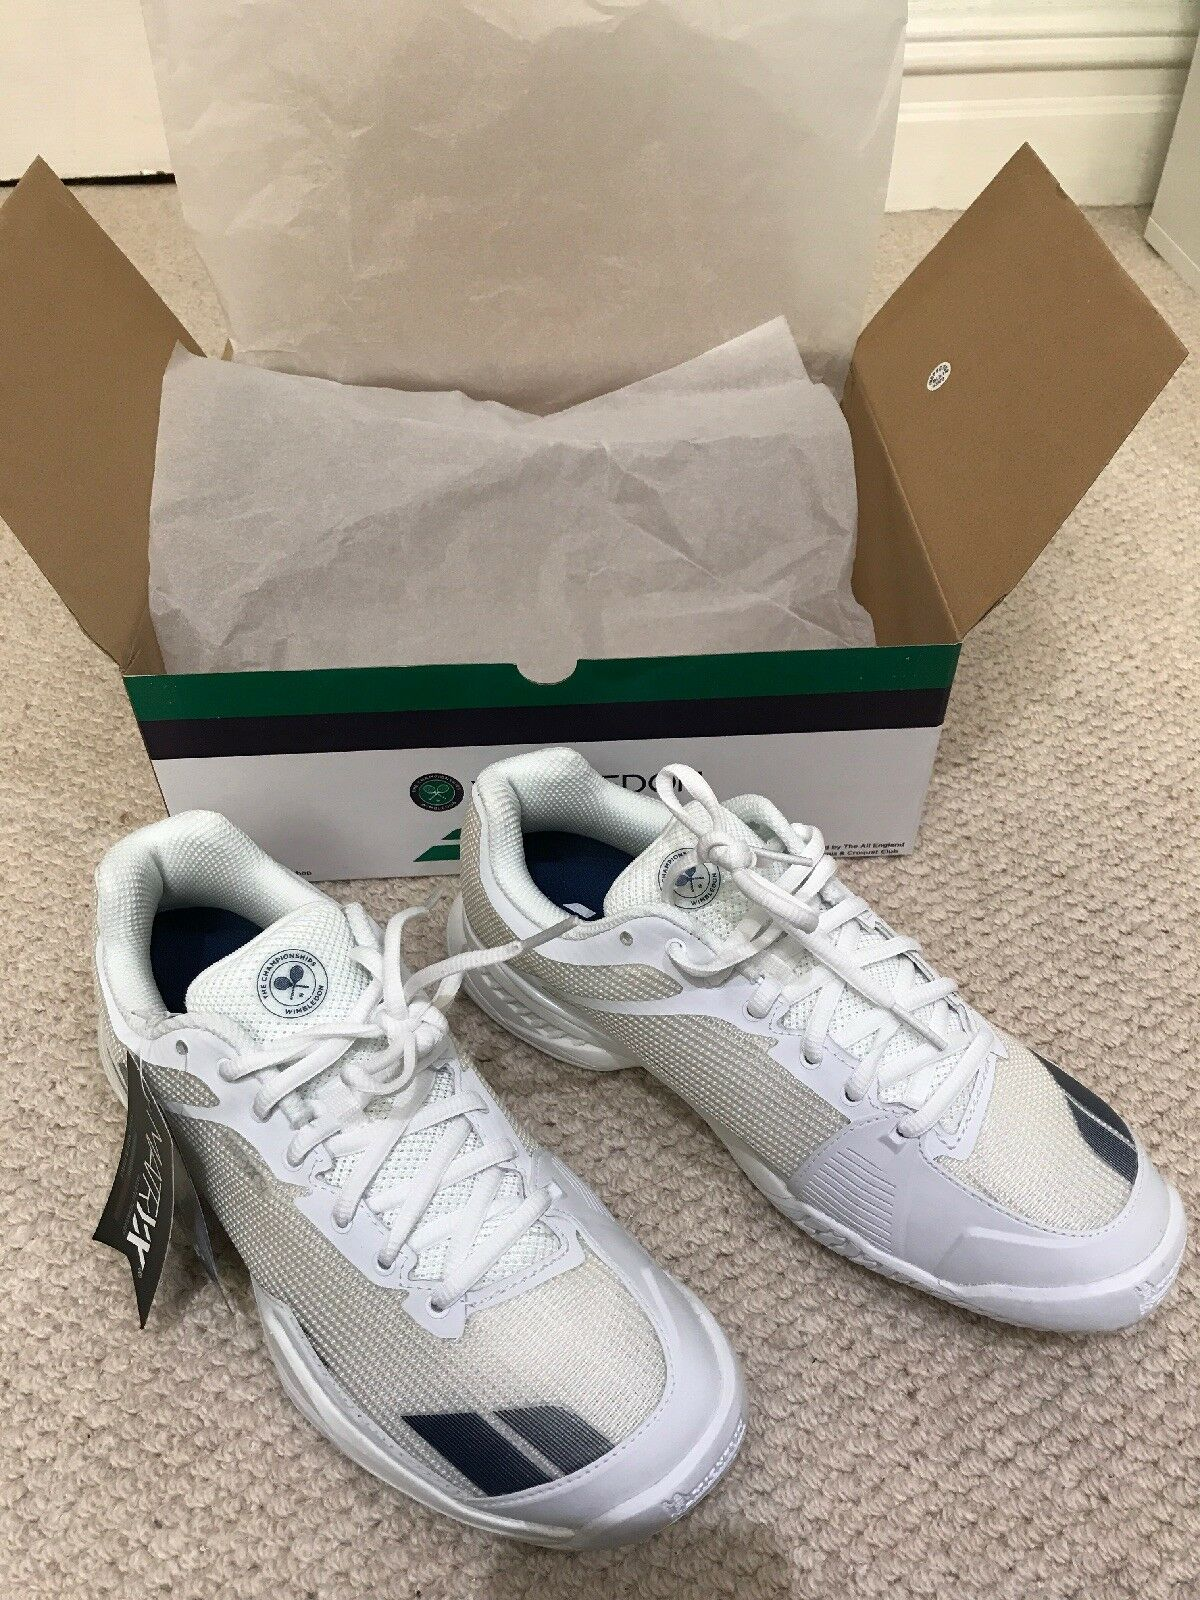 BRAND NEW Babolat trainers from the Wimbledon Championships